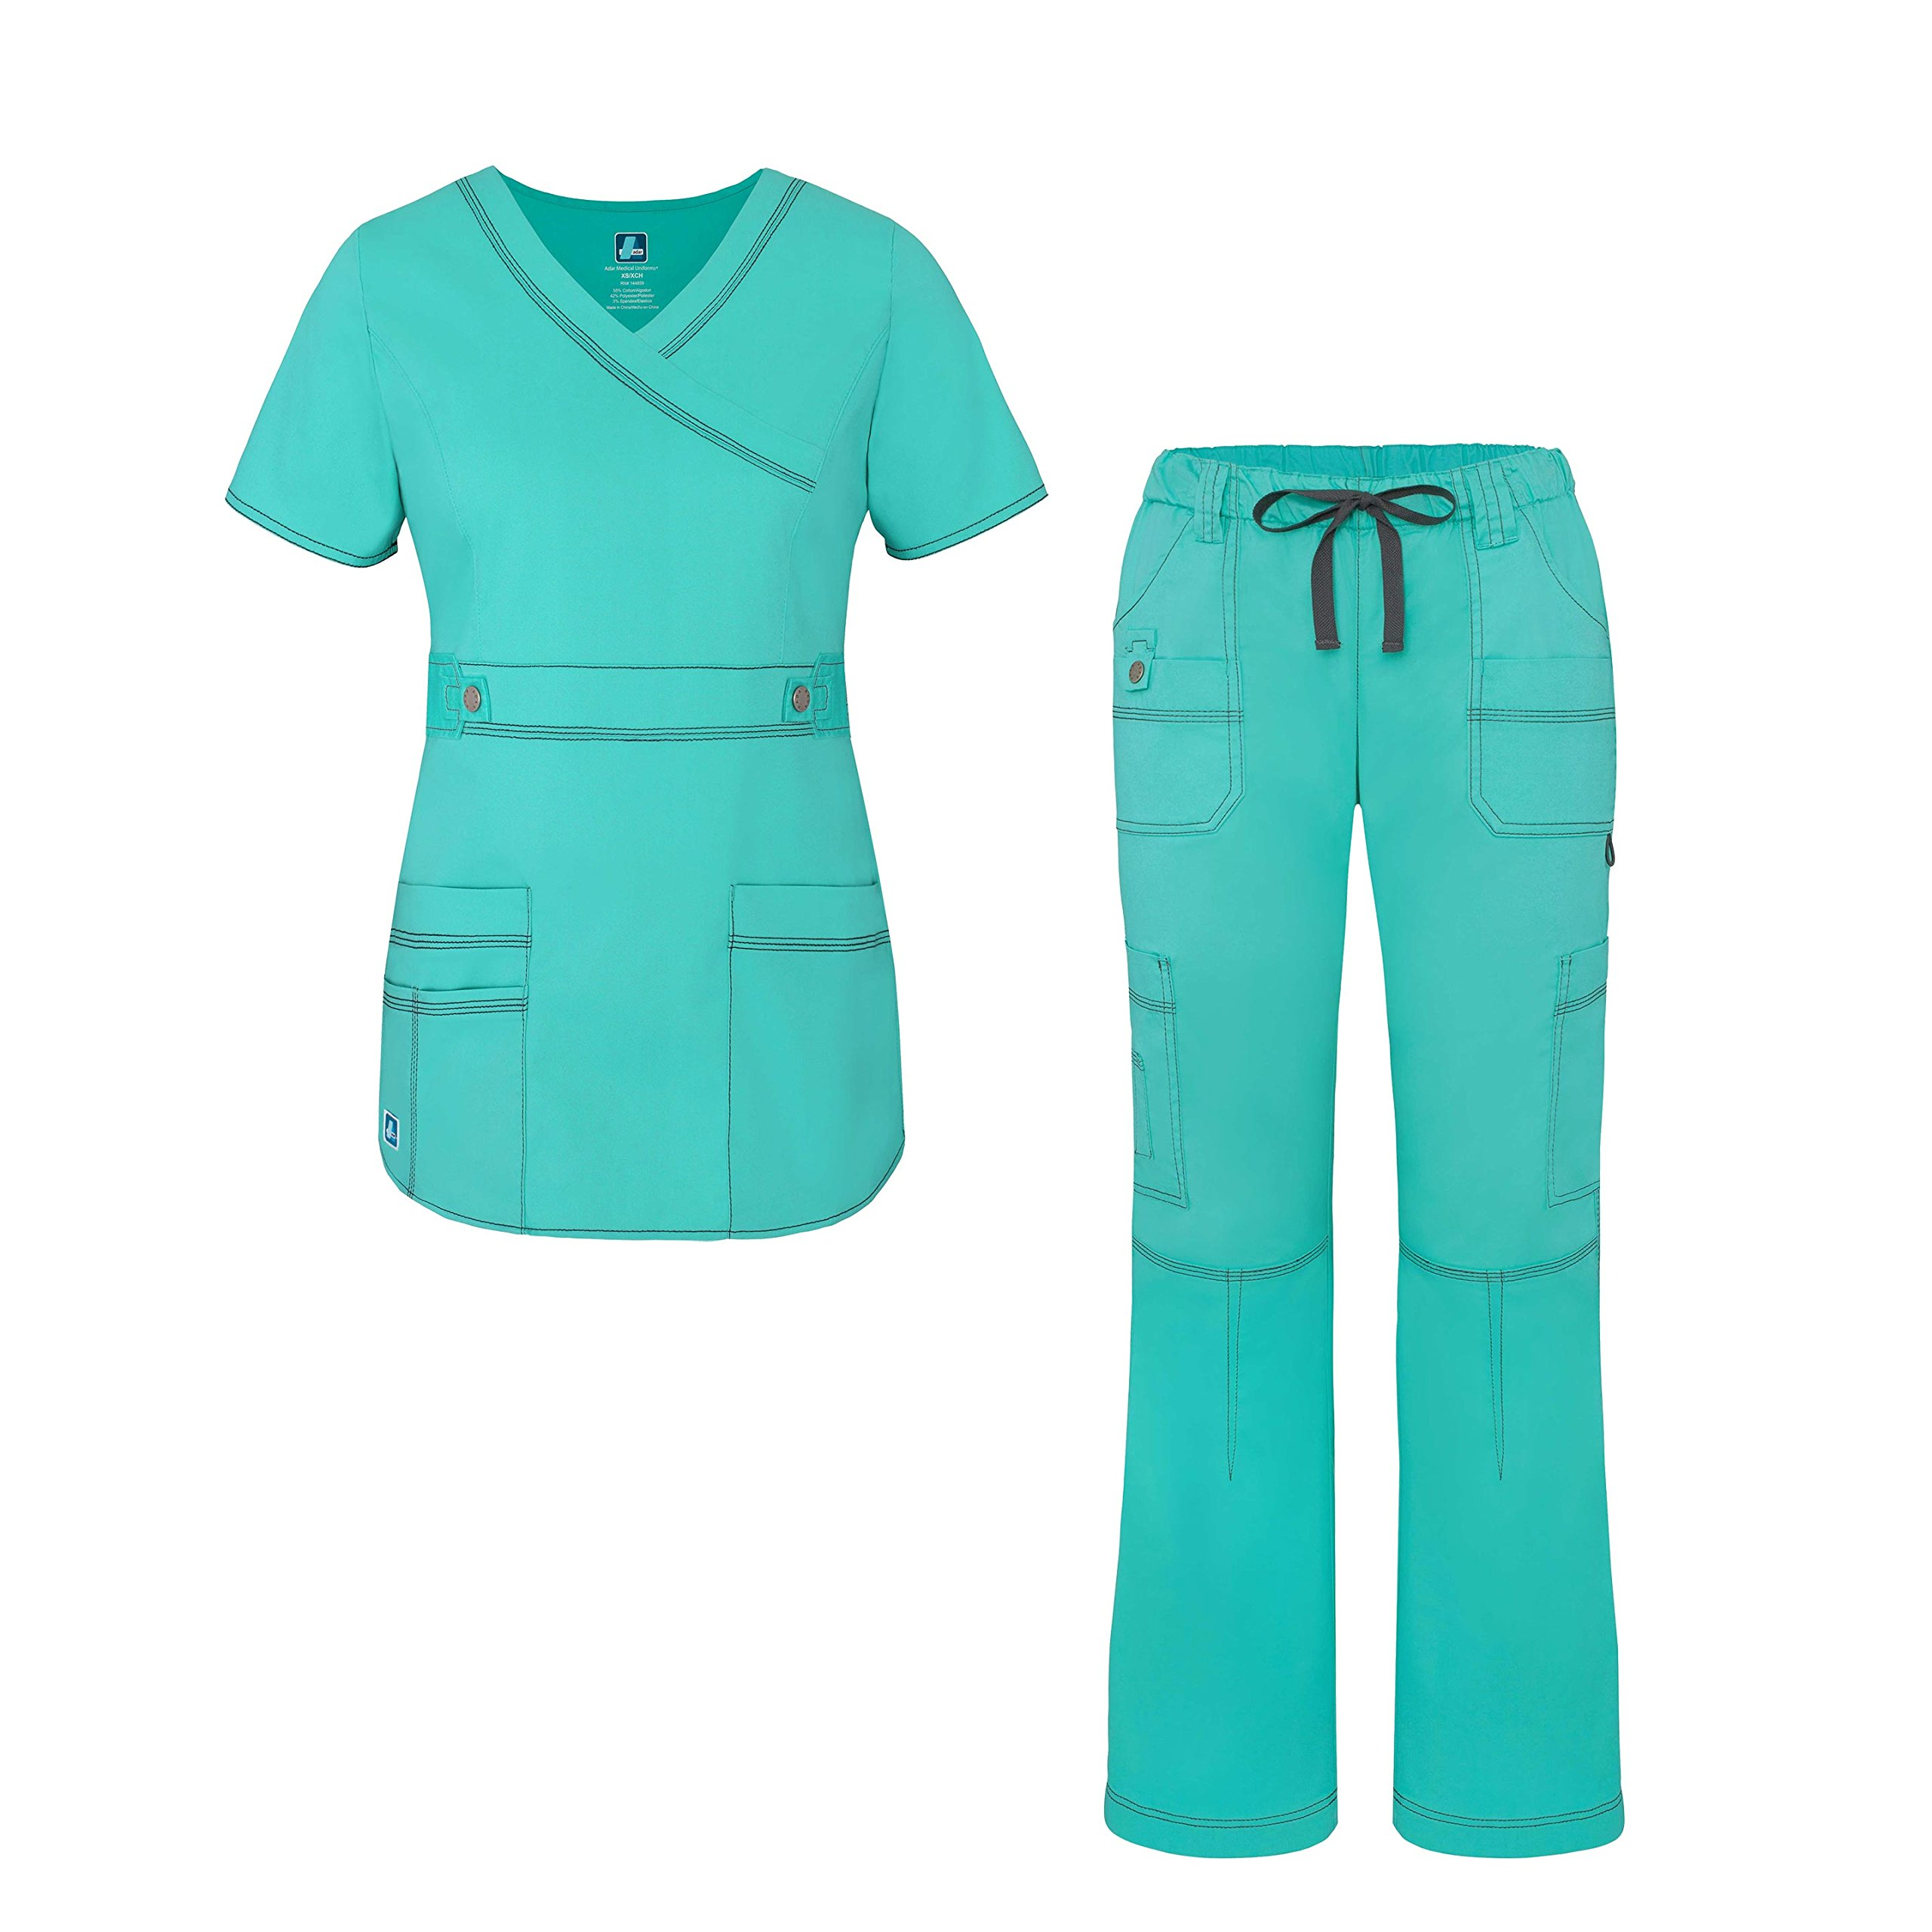 Adar Pop-Stretch Junior Fit Women's Scrub Set - Crossover Top and Multi Pocket Pants - 3500 - Sea Glass - L